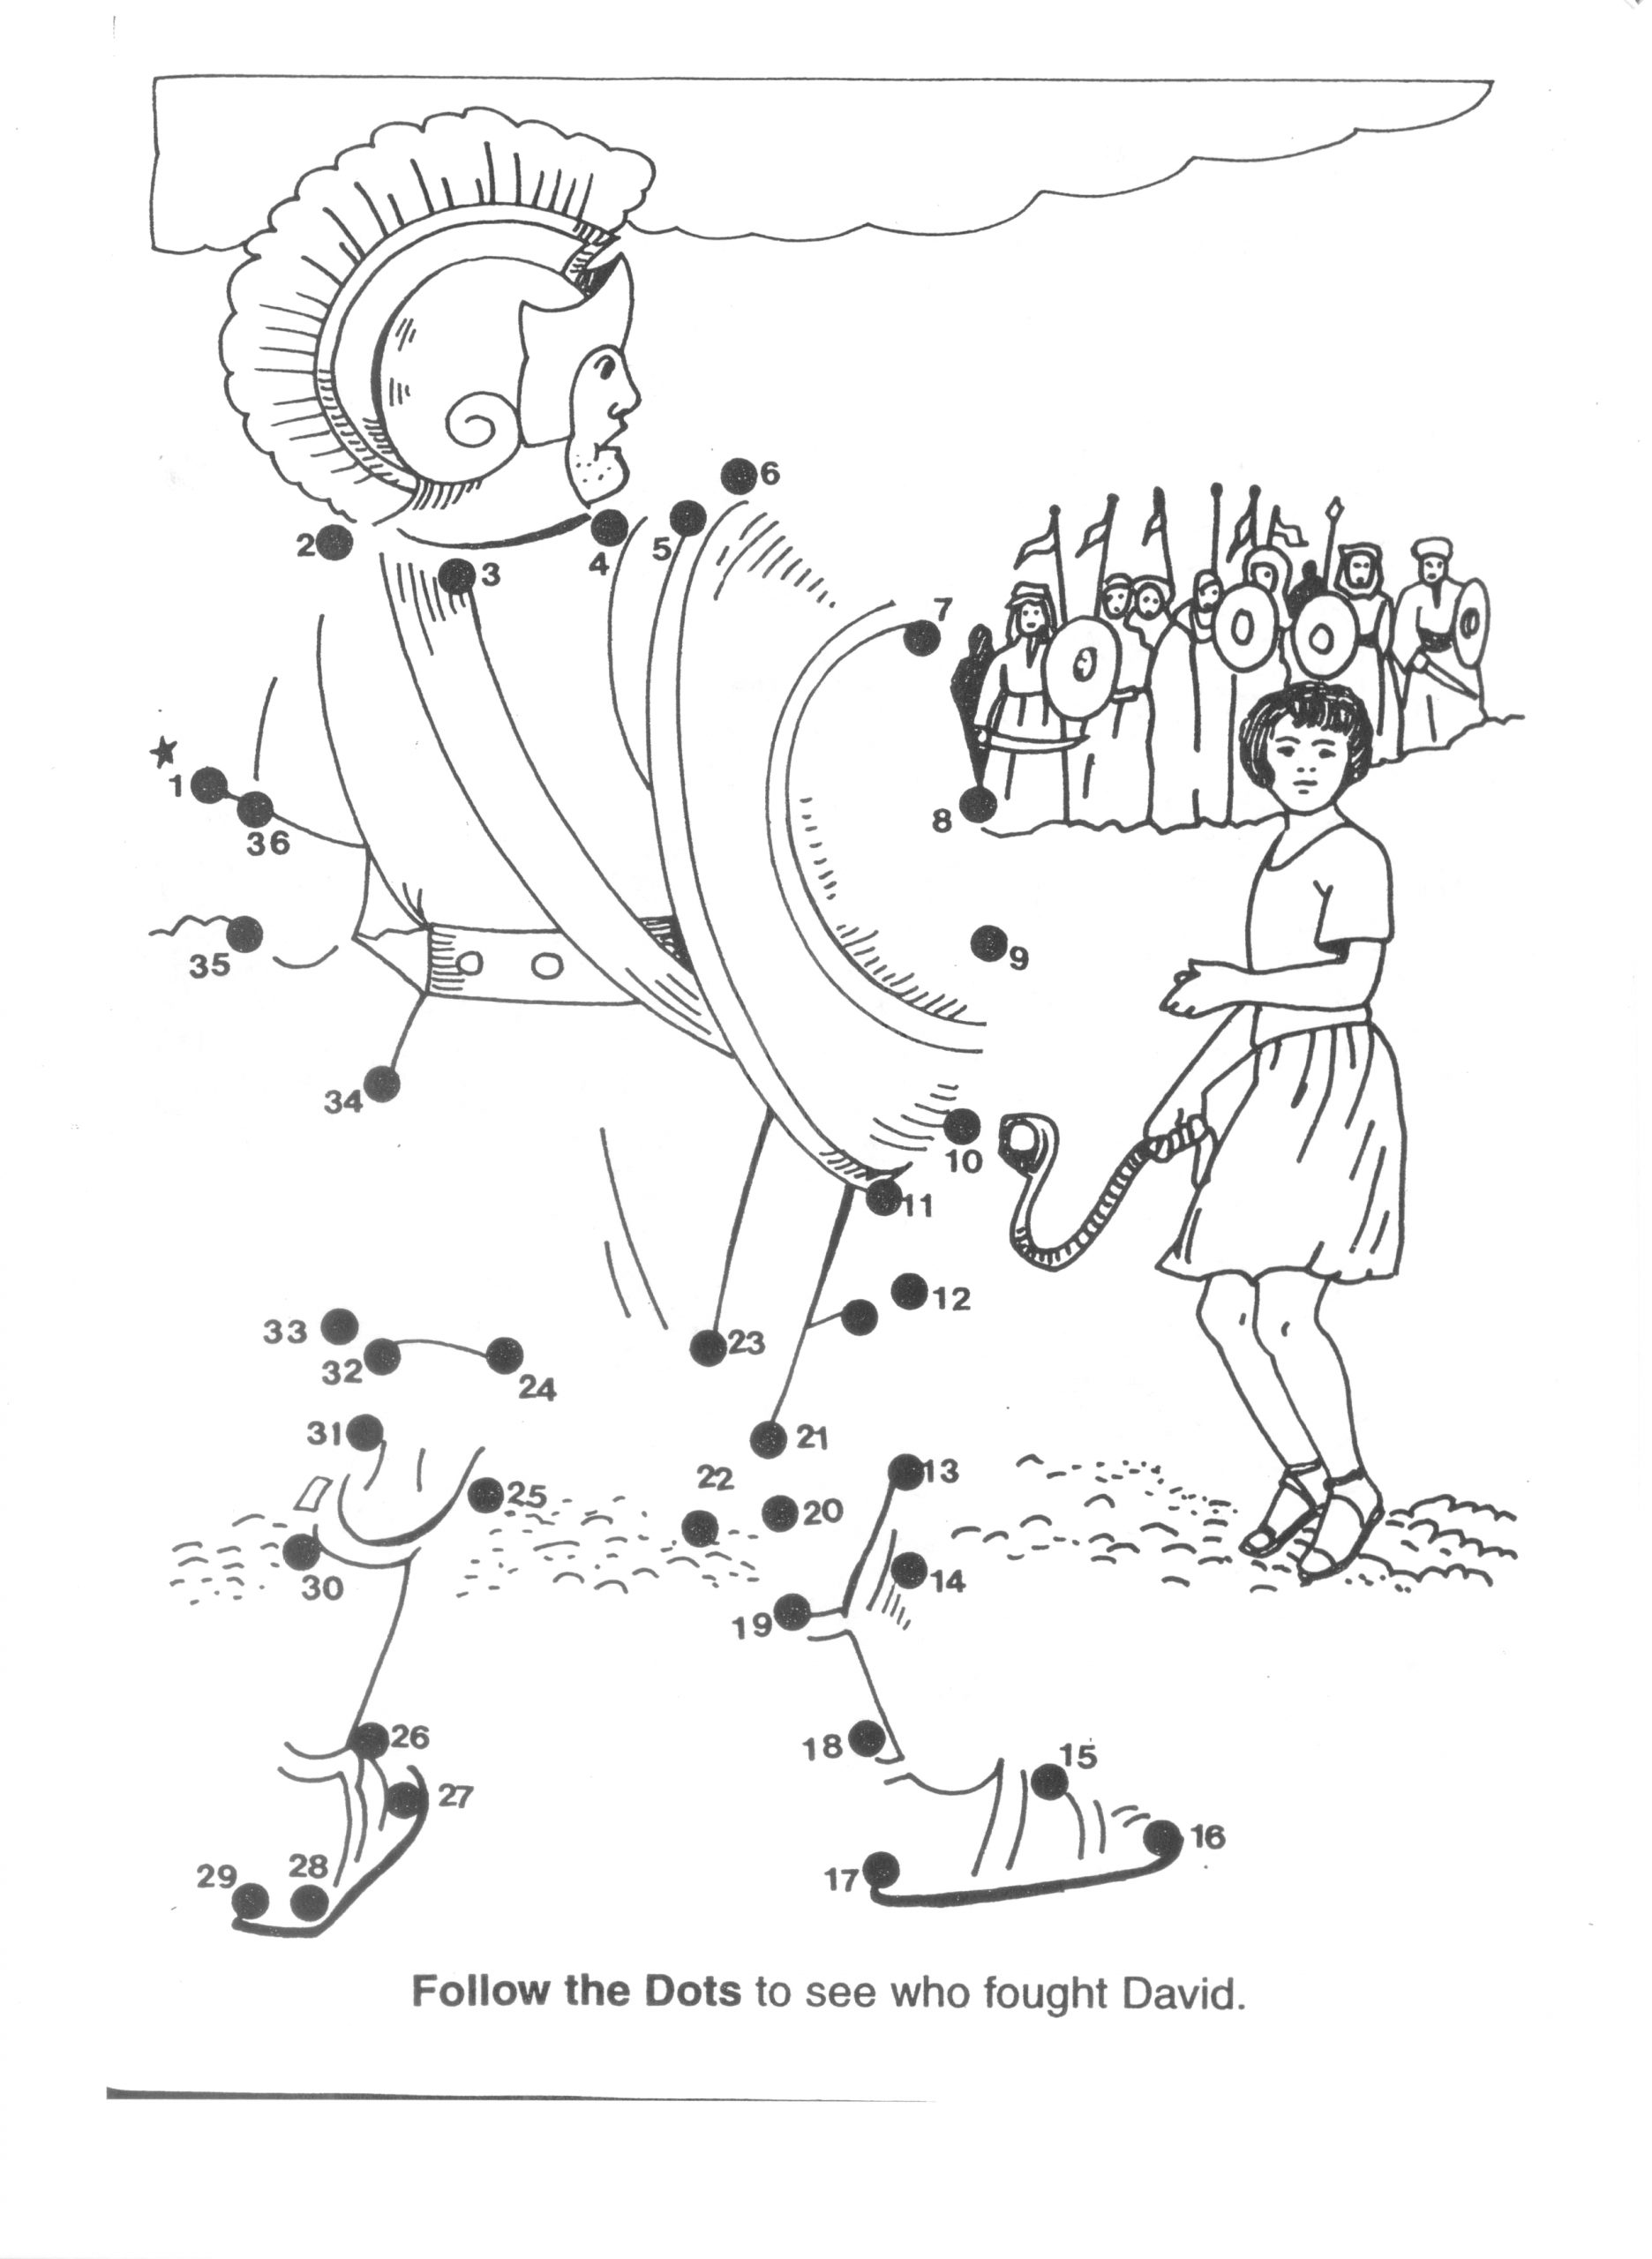 Sunday School Coloring Pages David and Goliath Goliath Worksheet Colouring Pages Pinteres for David and